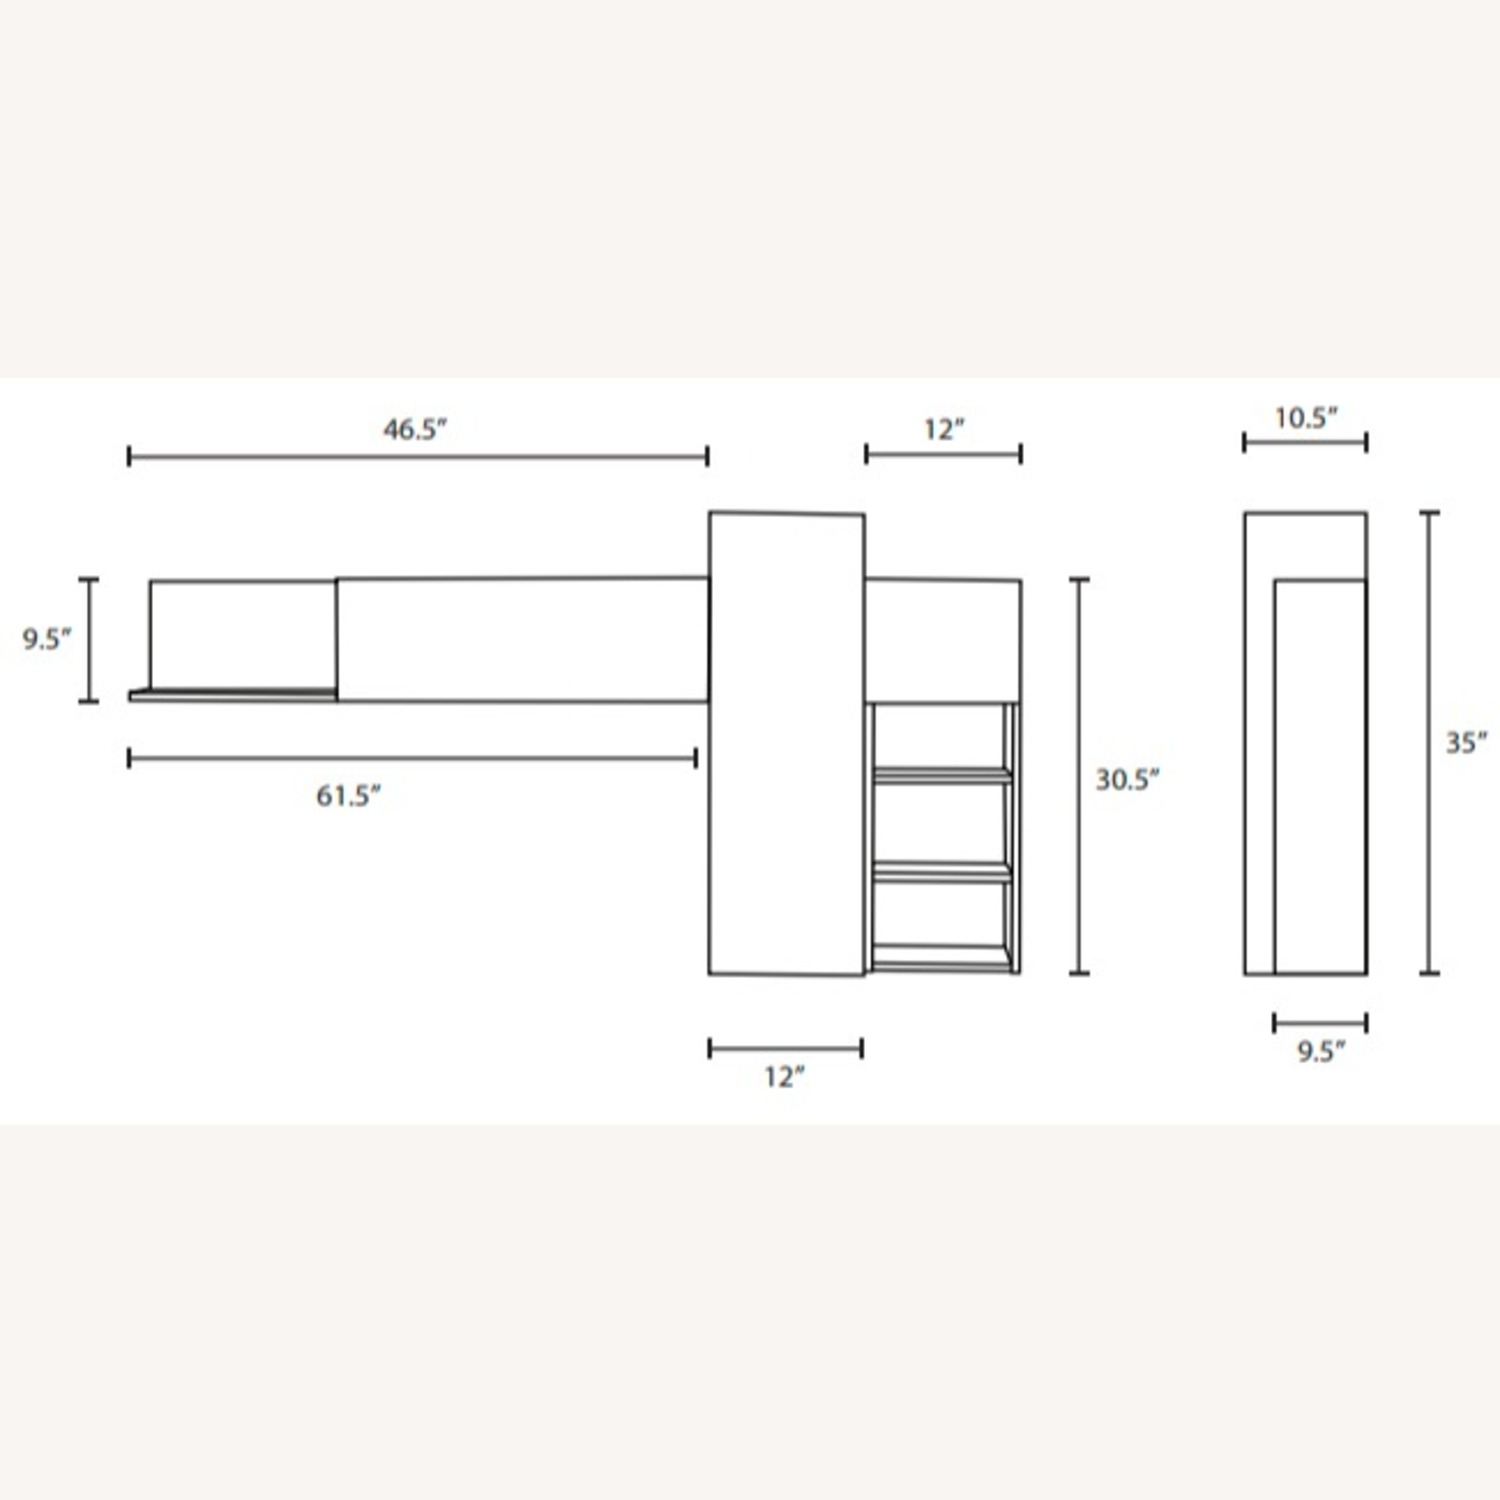 Wall Mounted Shelves In Gray & Walnut Finish - image-3